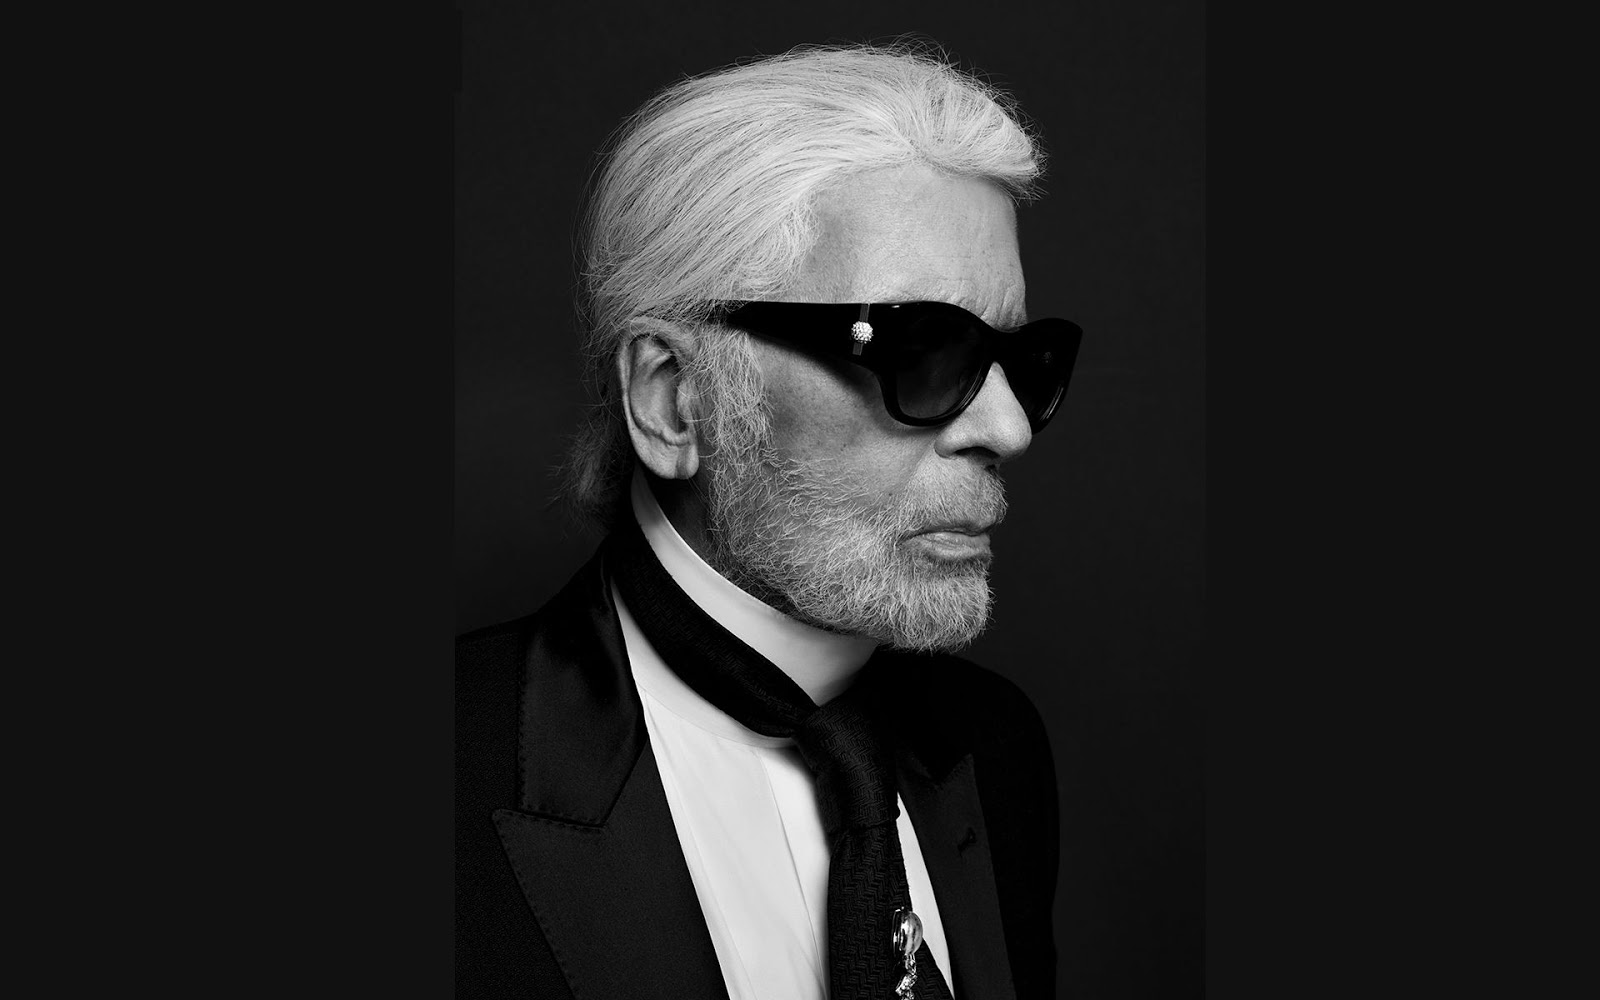 Karl lagerfeld death aged 85 obituary